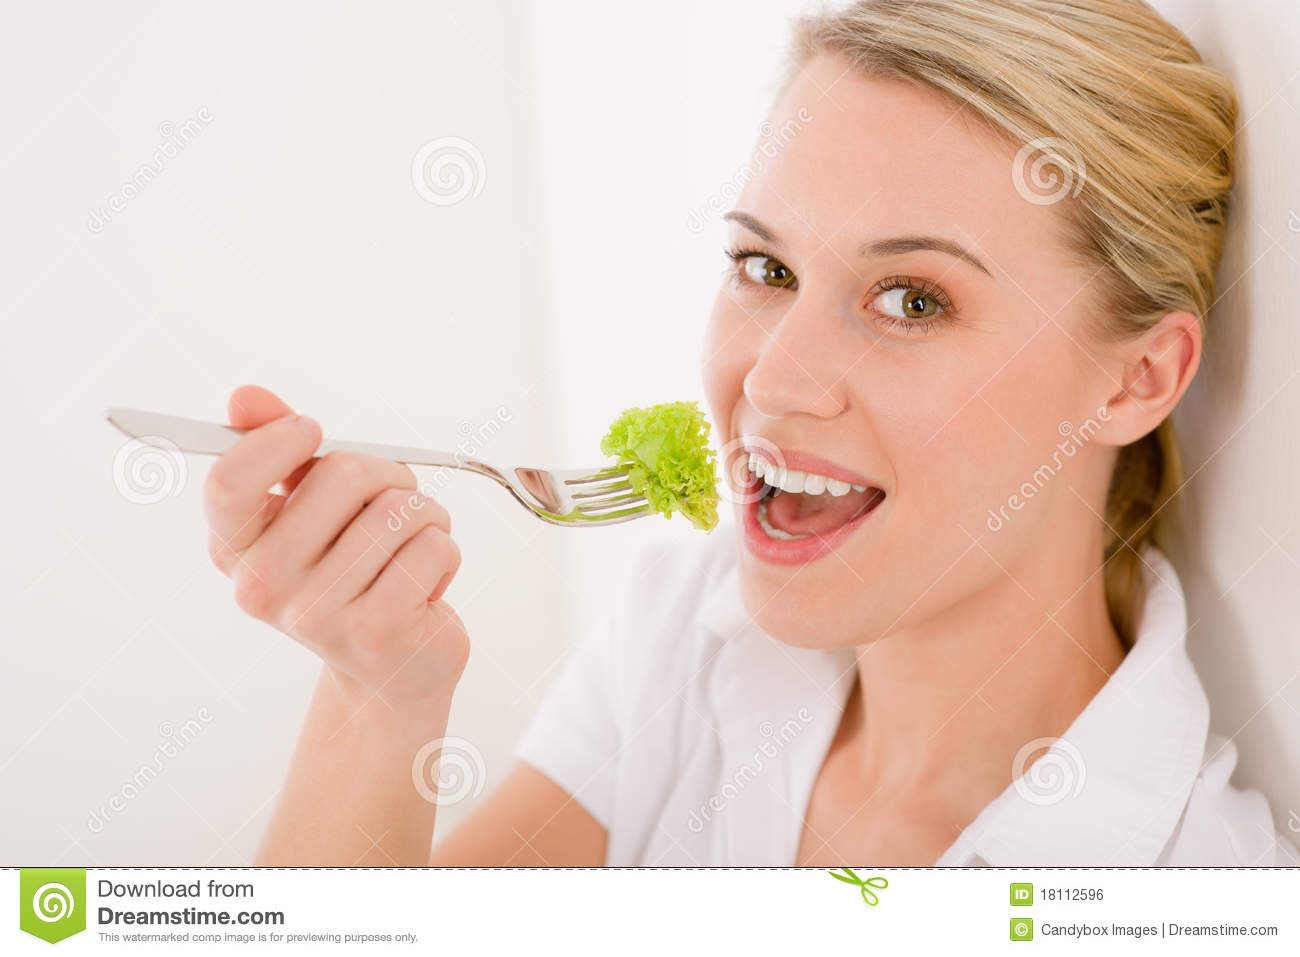 Royalty free stock image healthy lifestyle young woman with lettuce